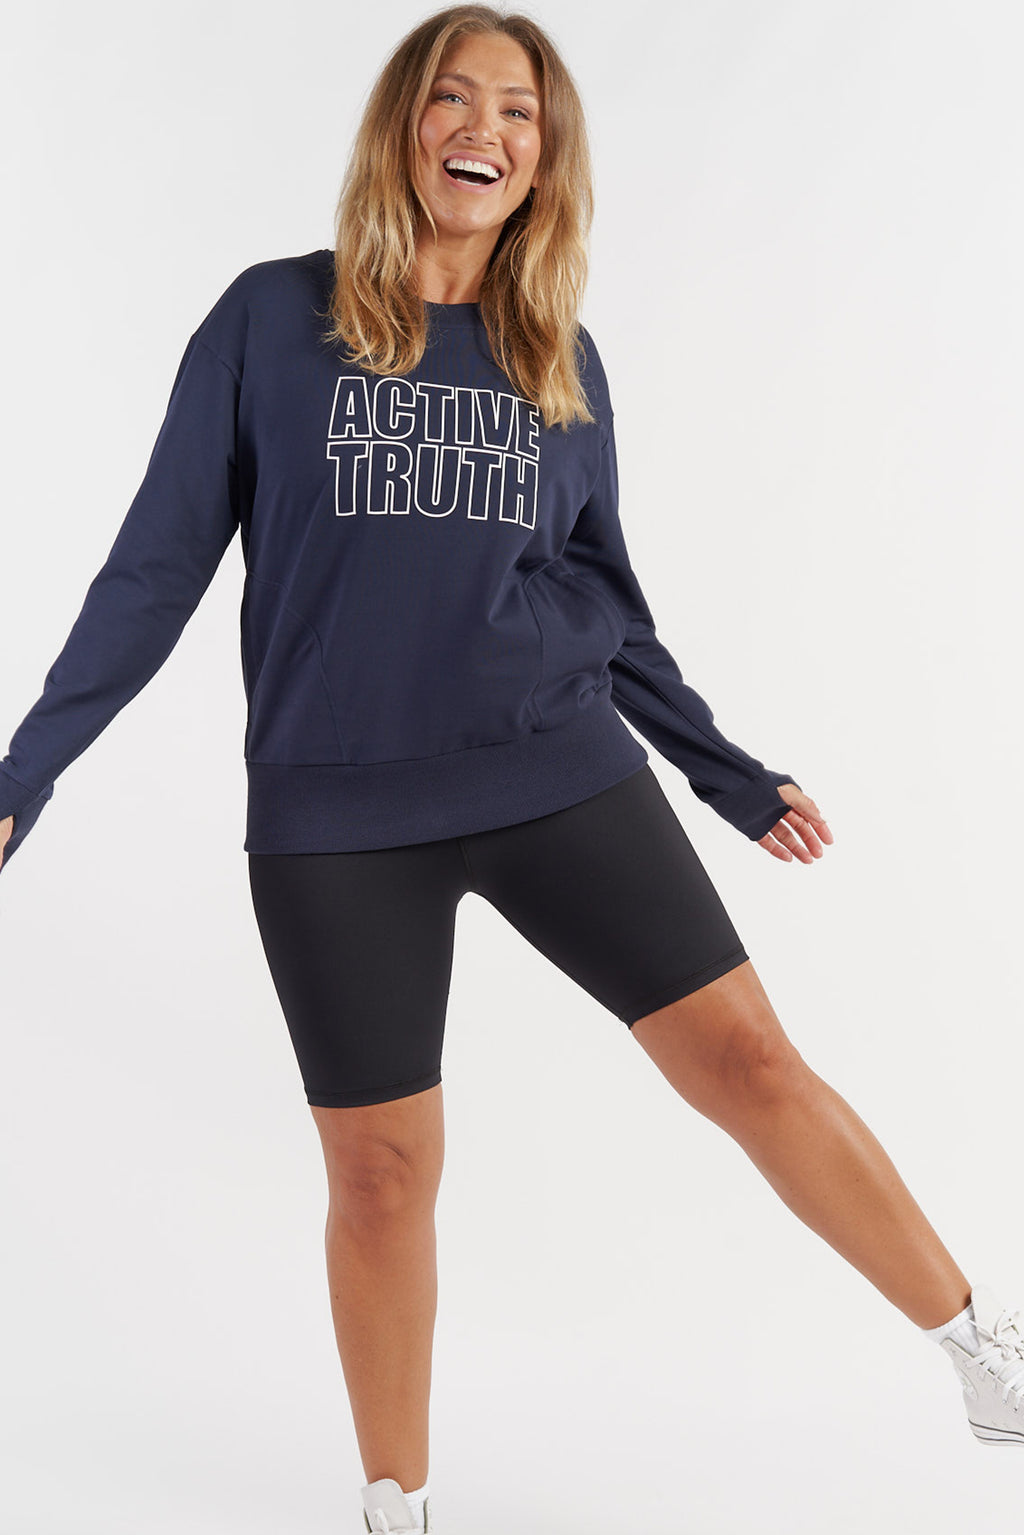 womens-activewear-jumper-gym-top-navy-large-front